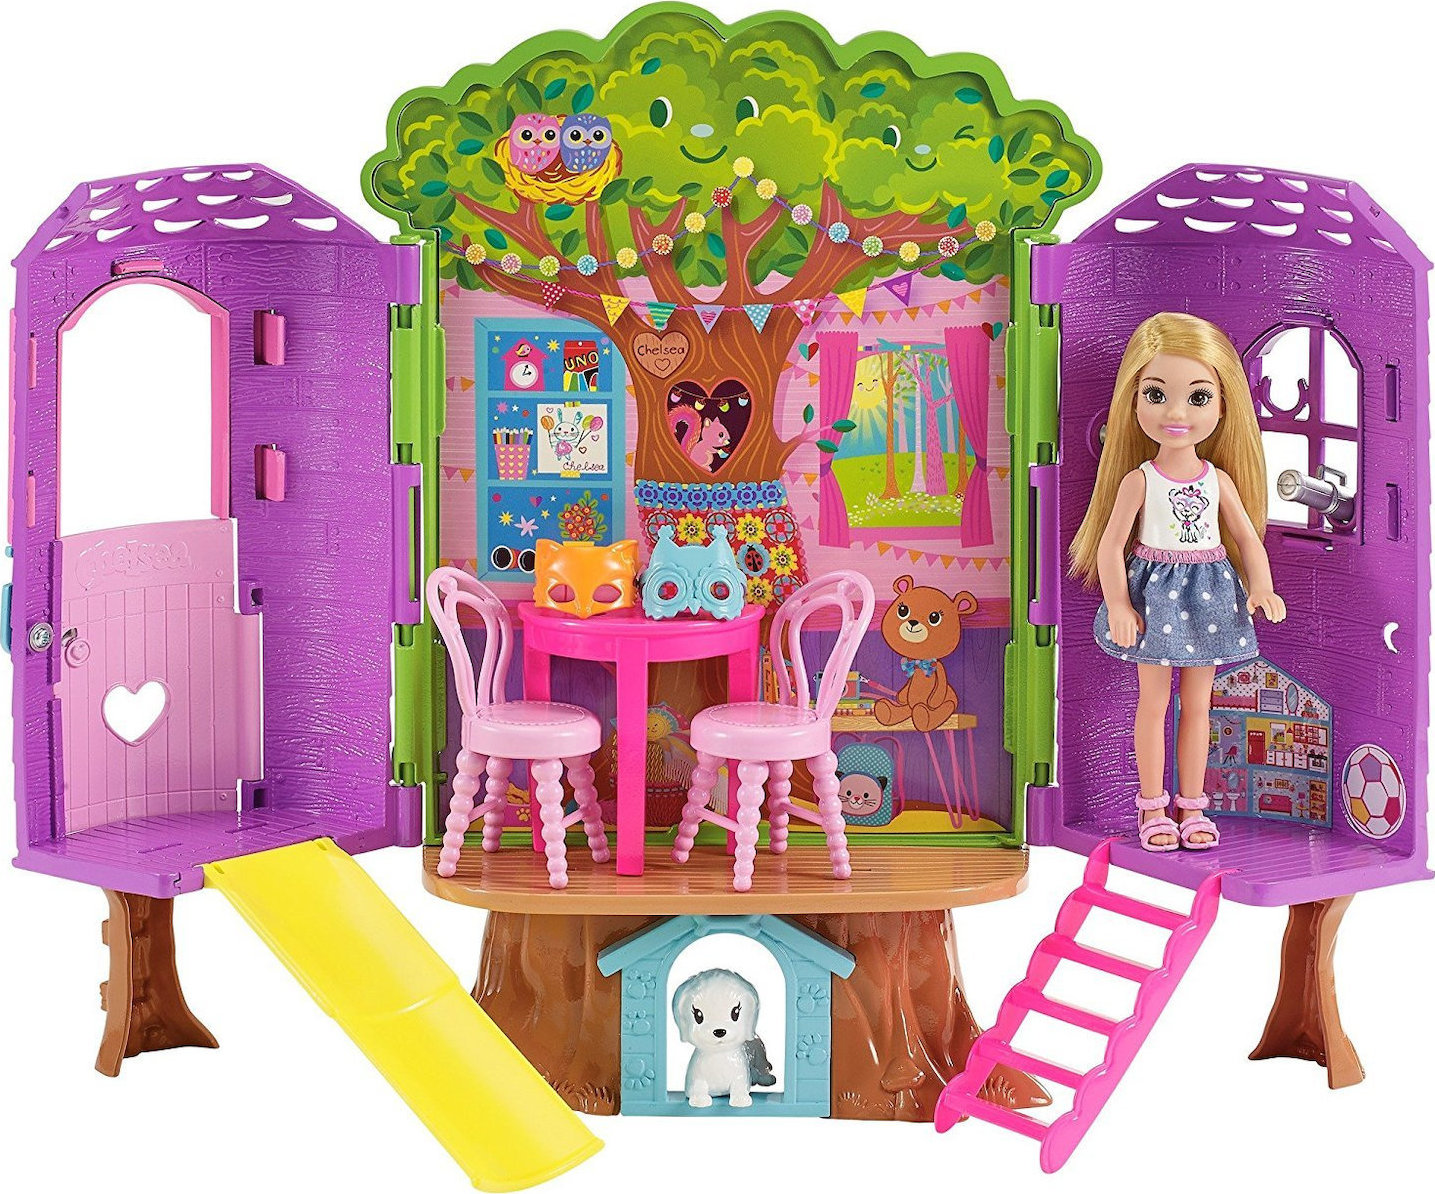 Mattel Barbie Club Chelsea -Treehouse (FPF83),enx.044269